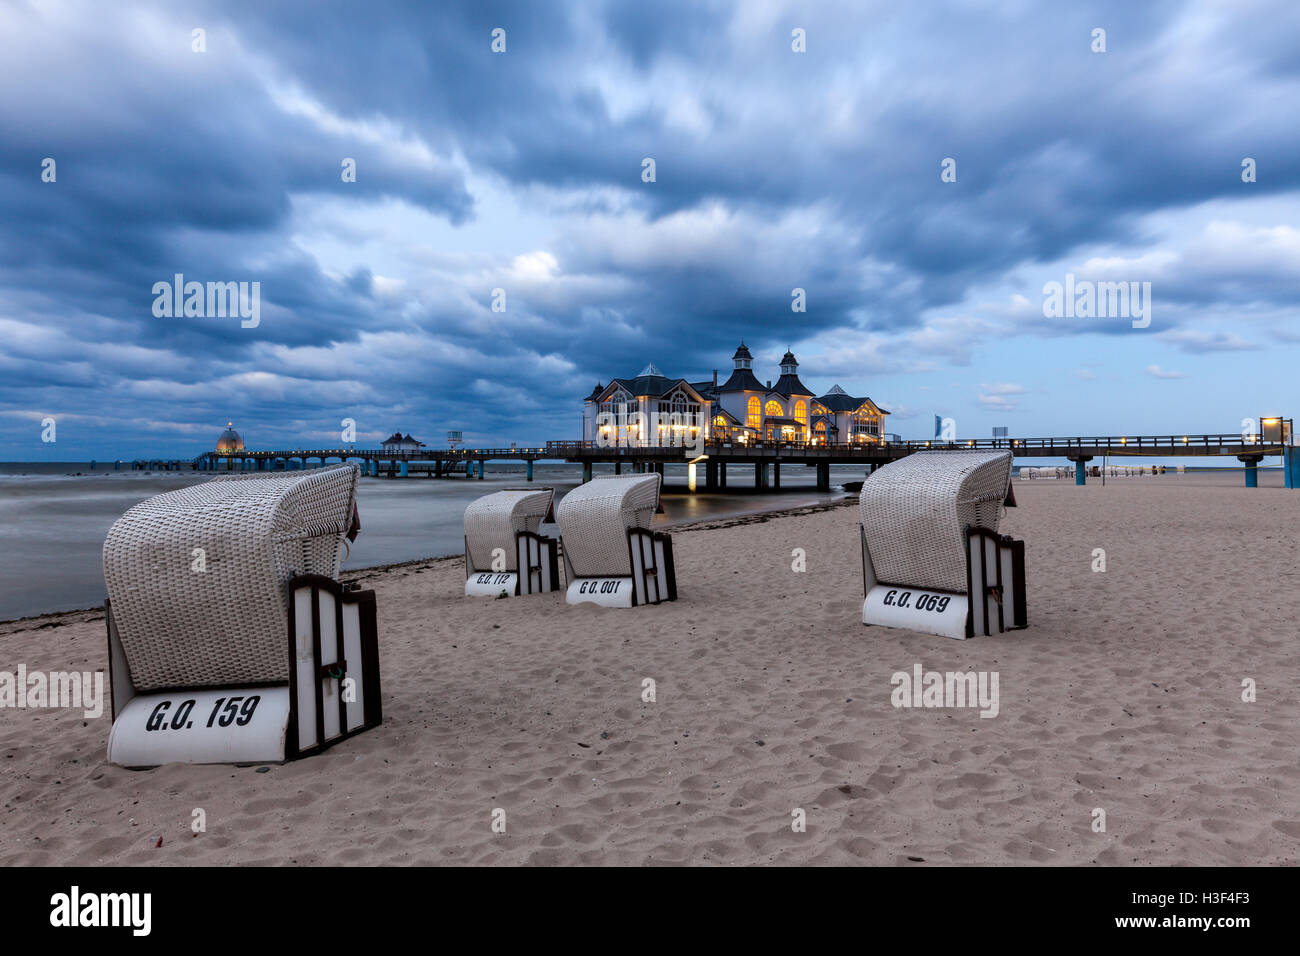 Beach chairs in front of the illuminated pier of Baltic Sea resort Sellin, Ruegen, at dusk - Stock Image